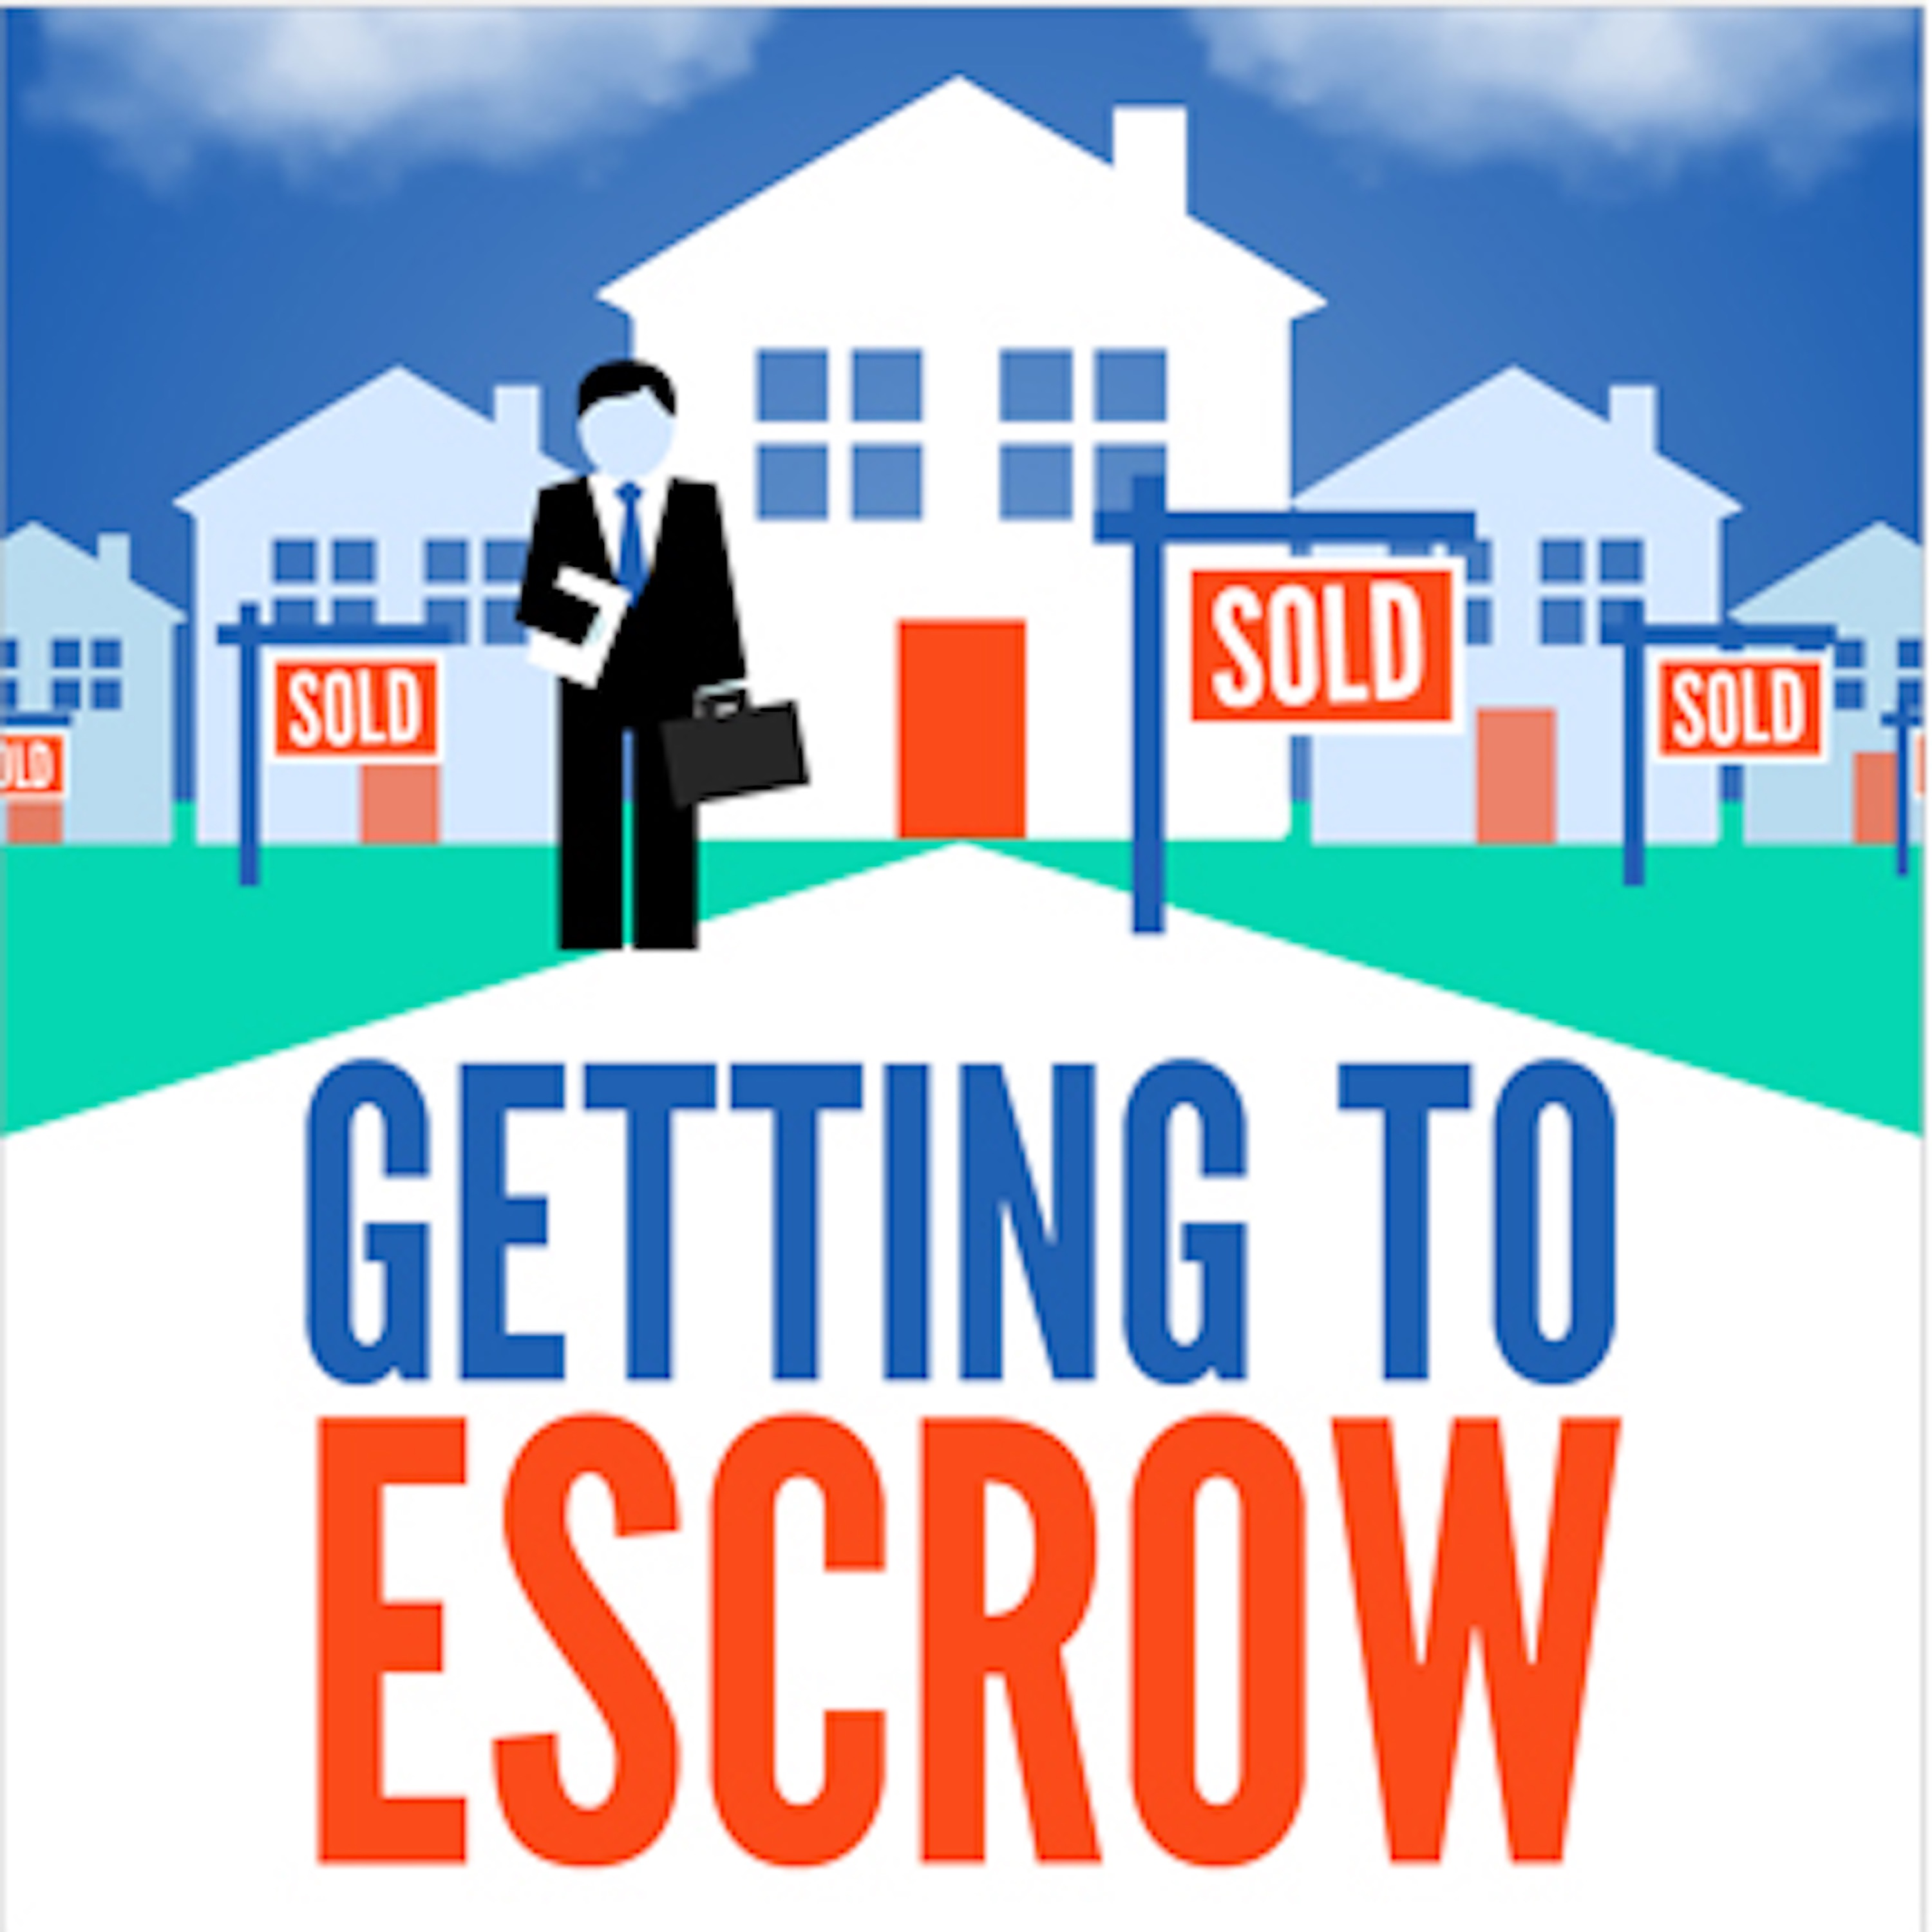 Getting To Escrow - Helping you create, build and maintain a residential real estate agent business built around your lifestyle